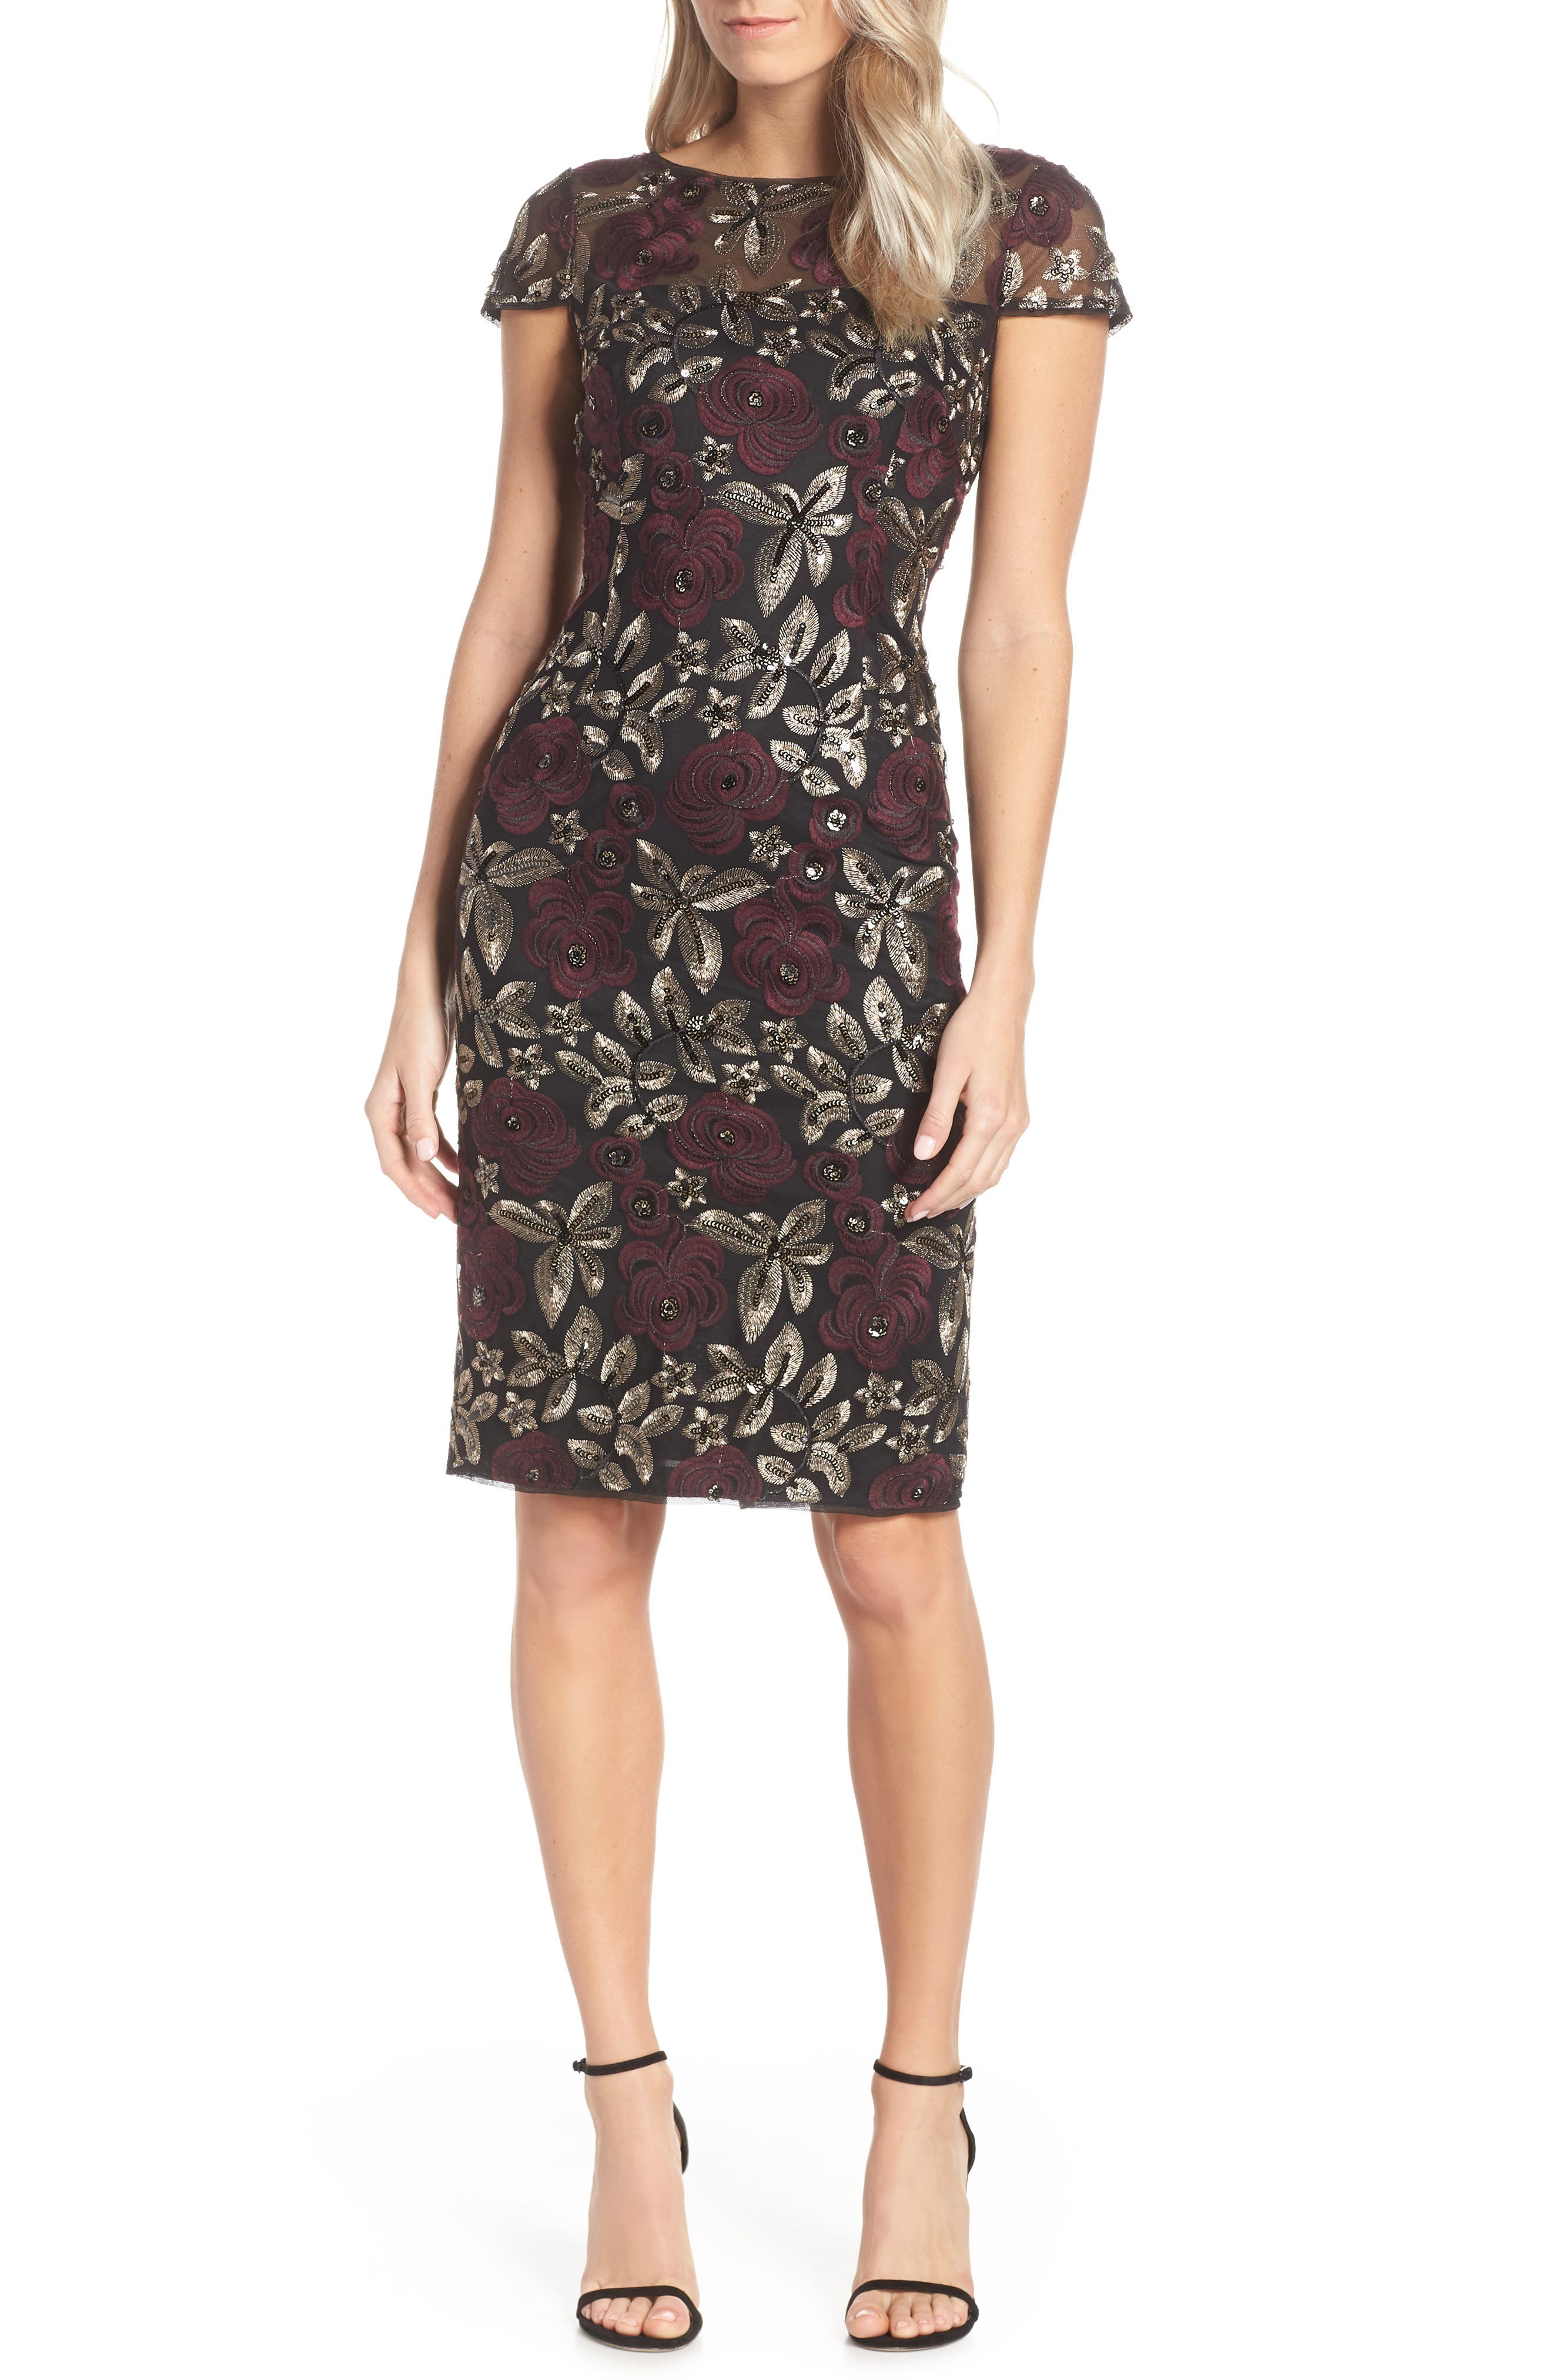 ADRIANNA PAPELL Sequin Embroidered Cocktail Dress, Main, color, 930